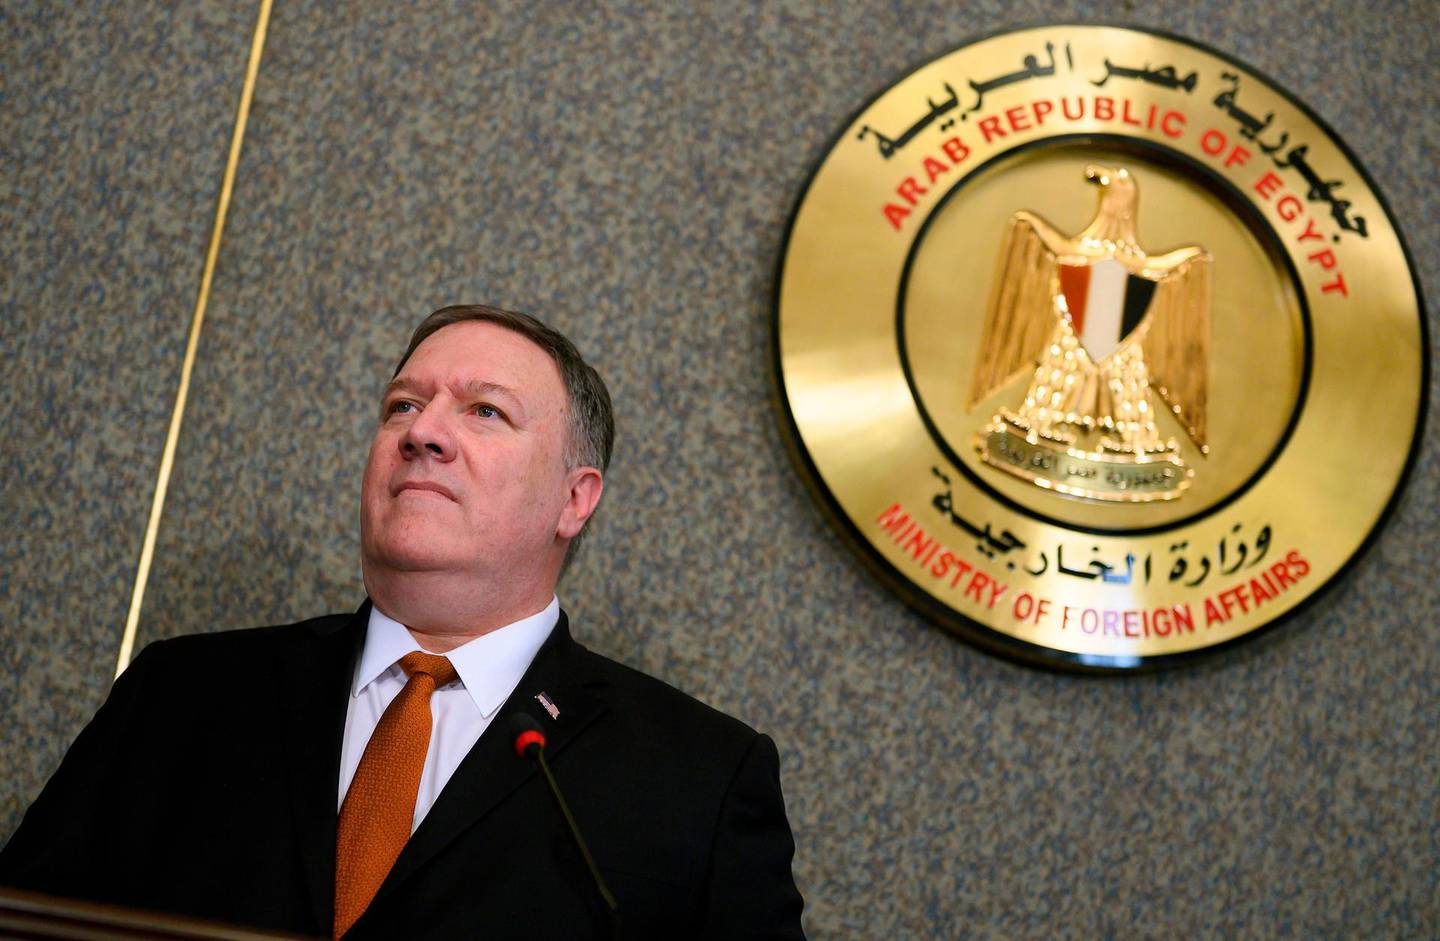 US Secretary of State Mike Pompeo holds a joint press conference with his Egyptian counterpart following their meeting at the ministry of foreign affairs in Cairo on January 10, 2019.  Pompeo also met with Egyptian President Abdel Fattah al-Sisi today, on the third leg of a regional tour to address concerns of American allies in the Middle East. / AFP / POOL / ANDREW CABALLERO-REYNOLDS